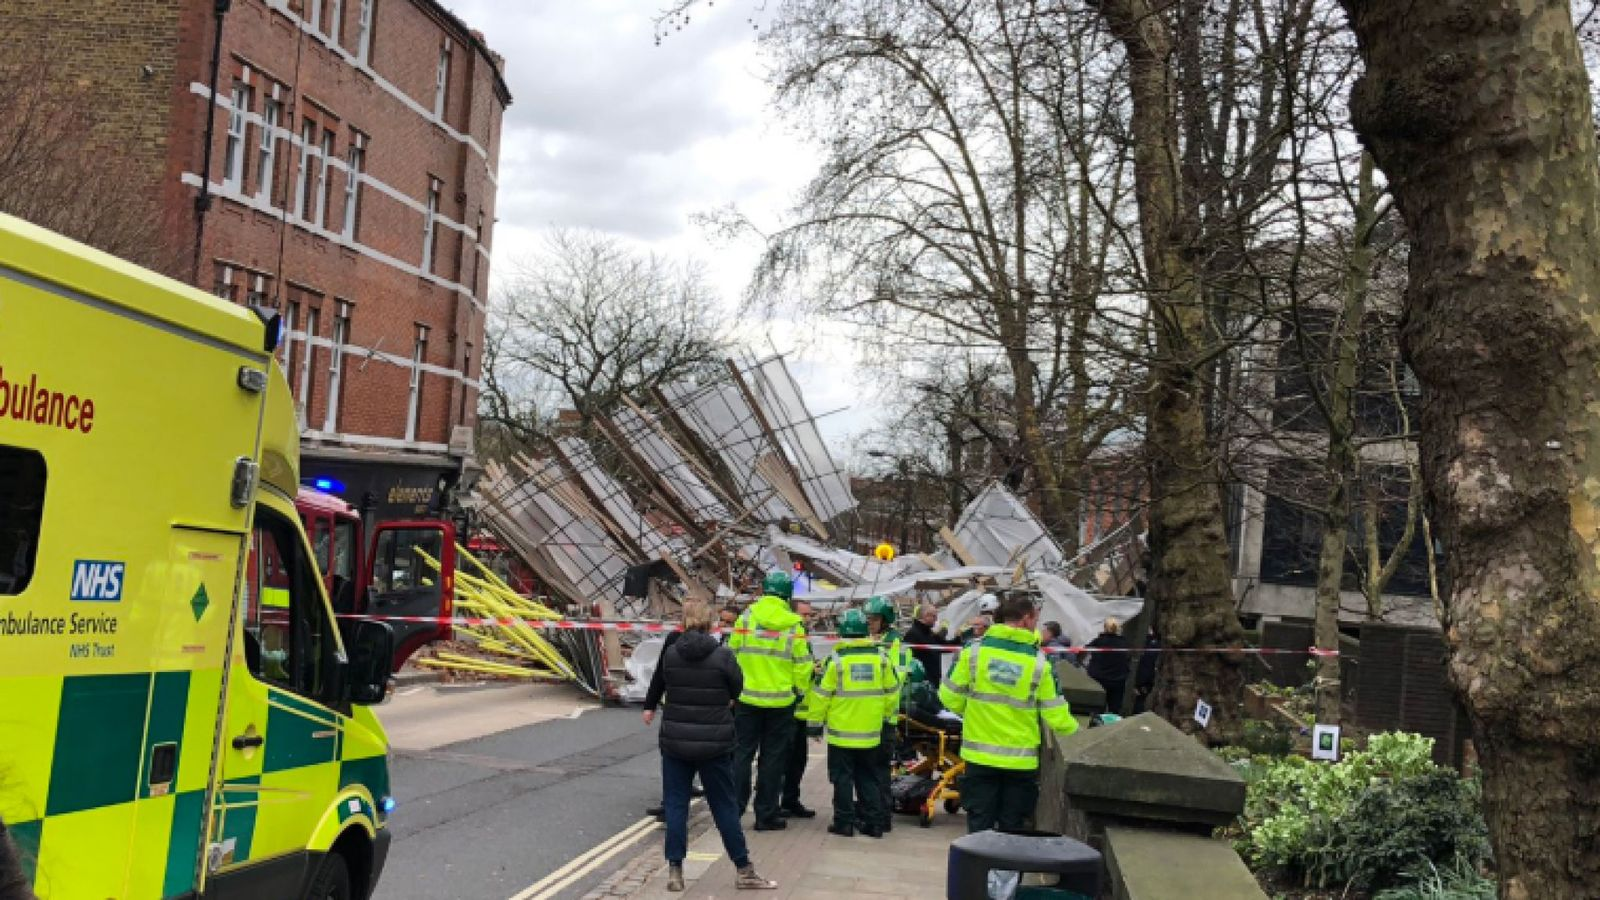 There were no reports of injuries at the scene in Hampstead. Pic: @DoctorKenny